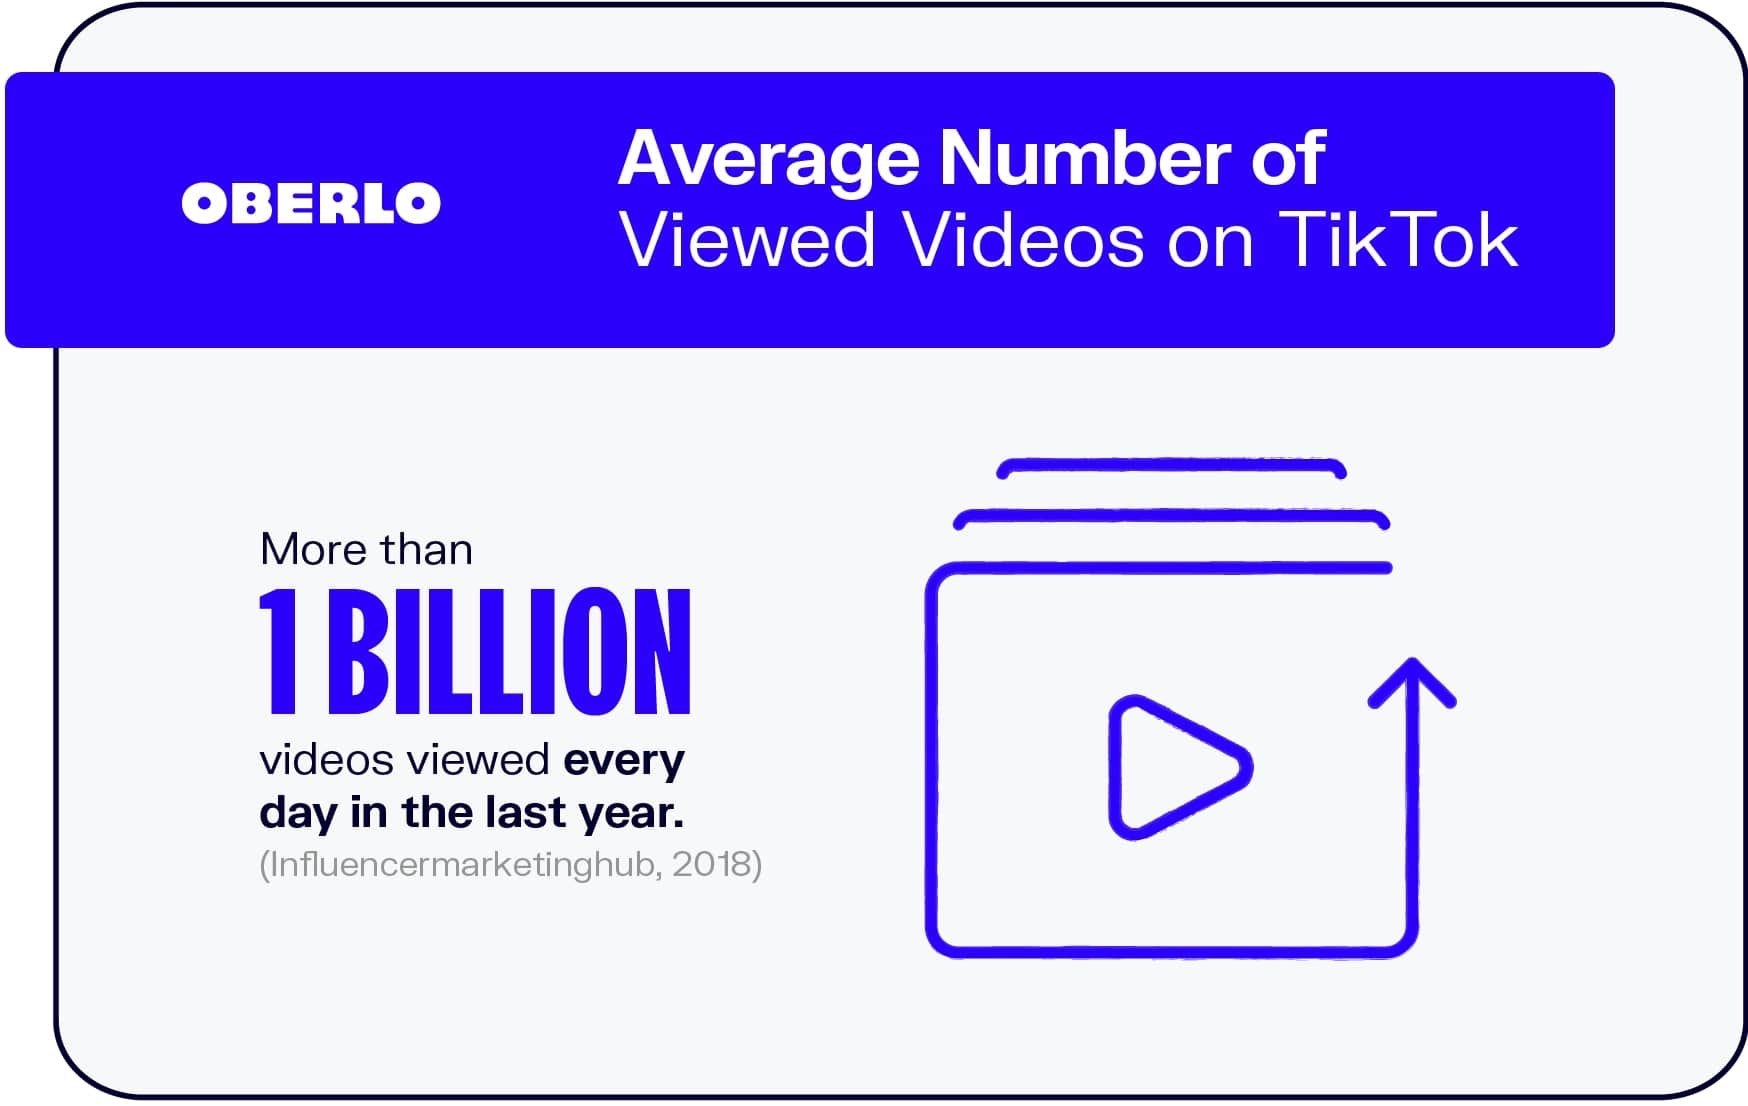 Average Number of Viewed Videos on TikTok